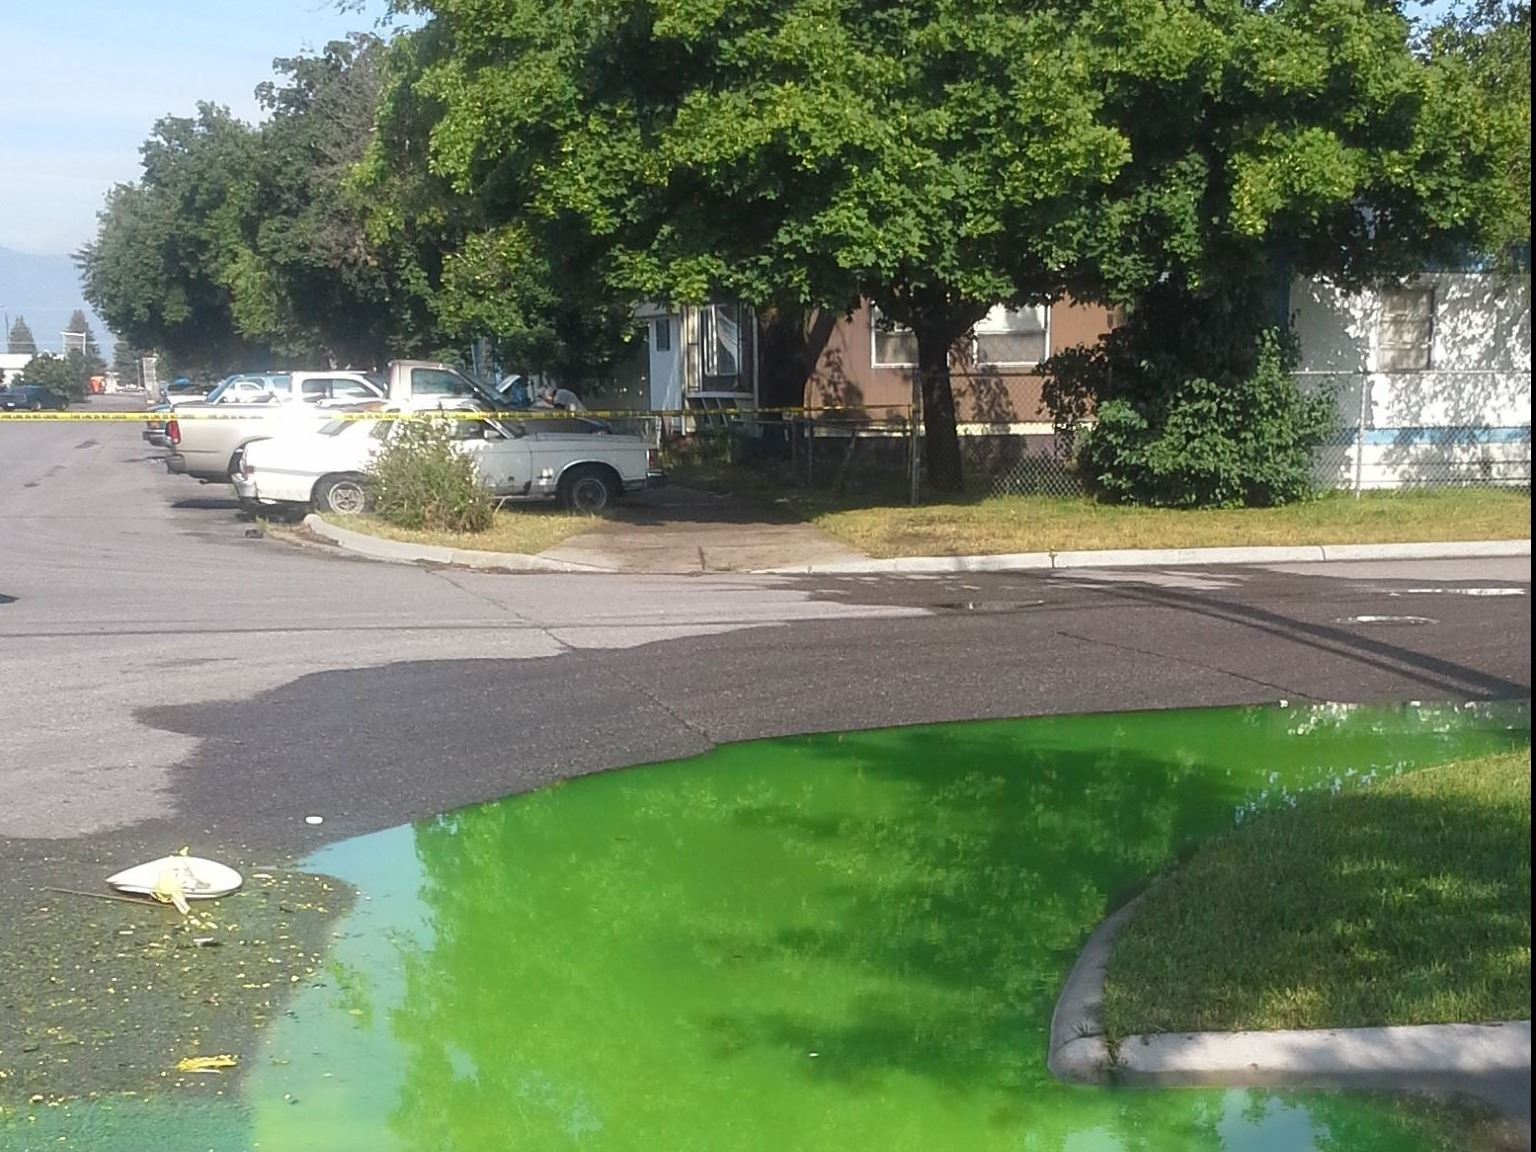 Image showing bright green liquid pooling over the curb and crosswalk in a Missoula Residential Neig